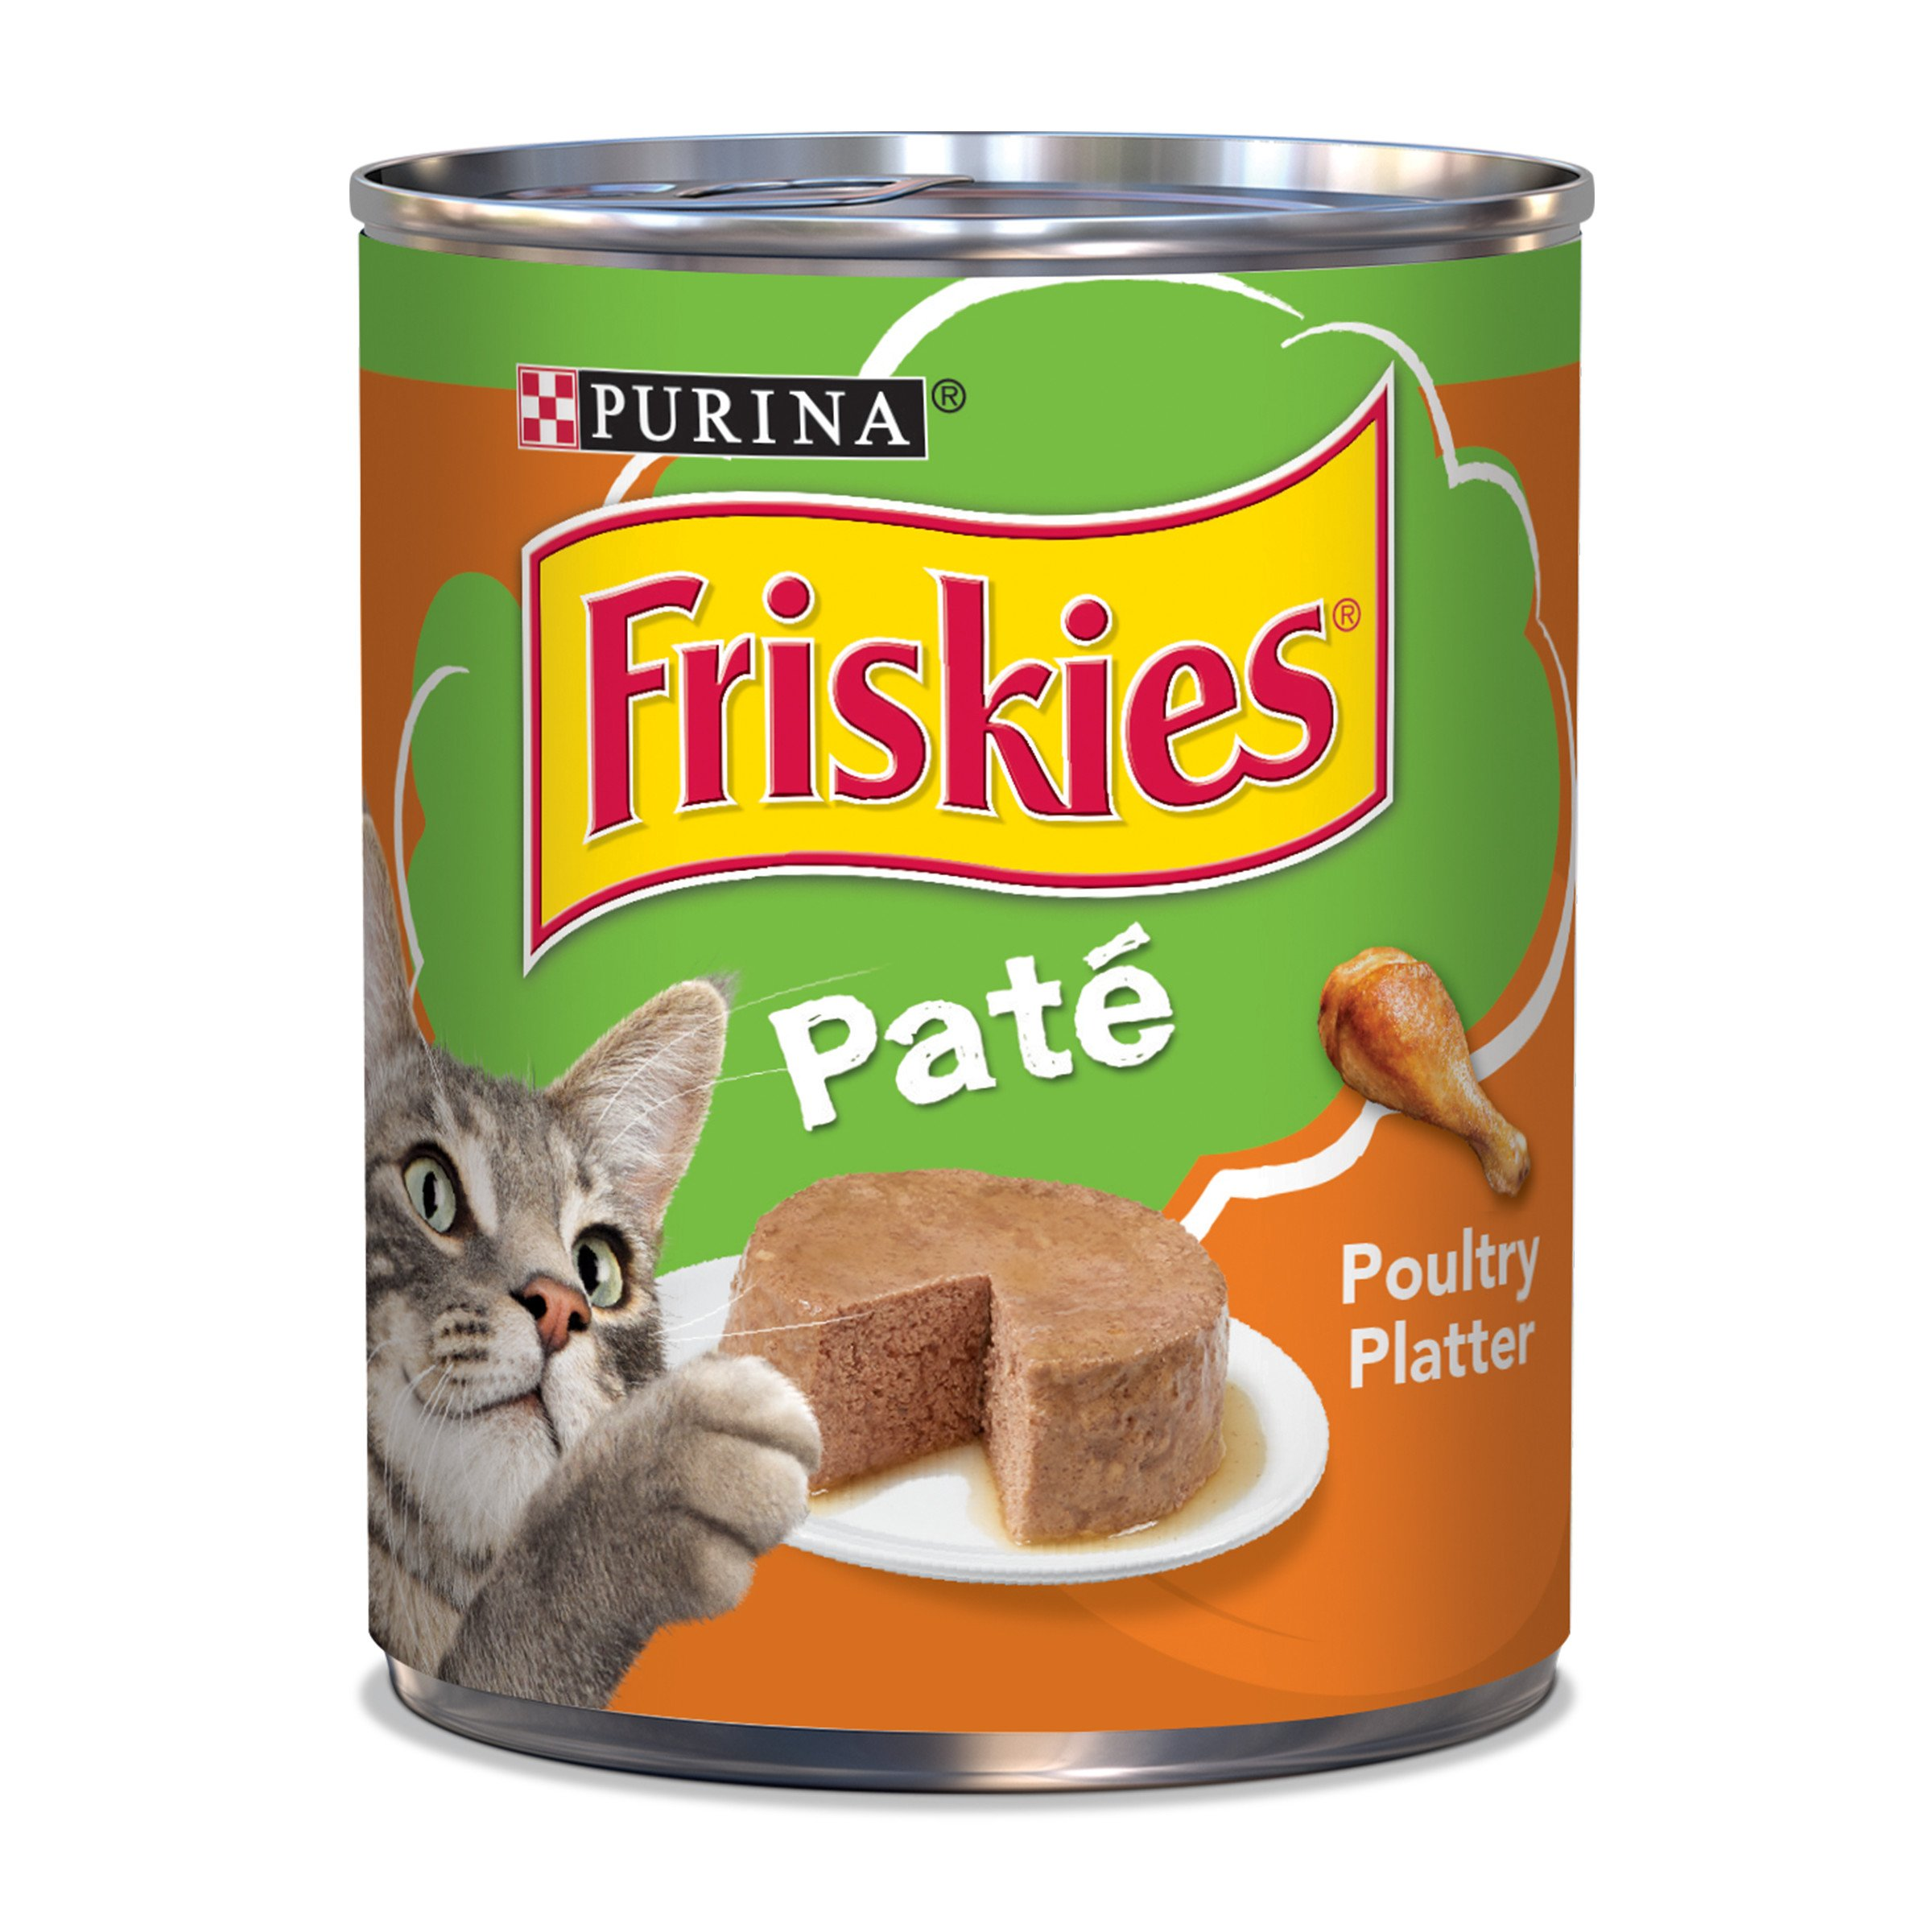 Purina Friskies Pate Wet Cat Food, Poultry Platter - (12) 13 oz. Cans by Purina Friskies